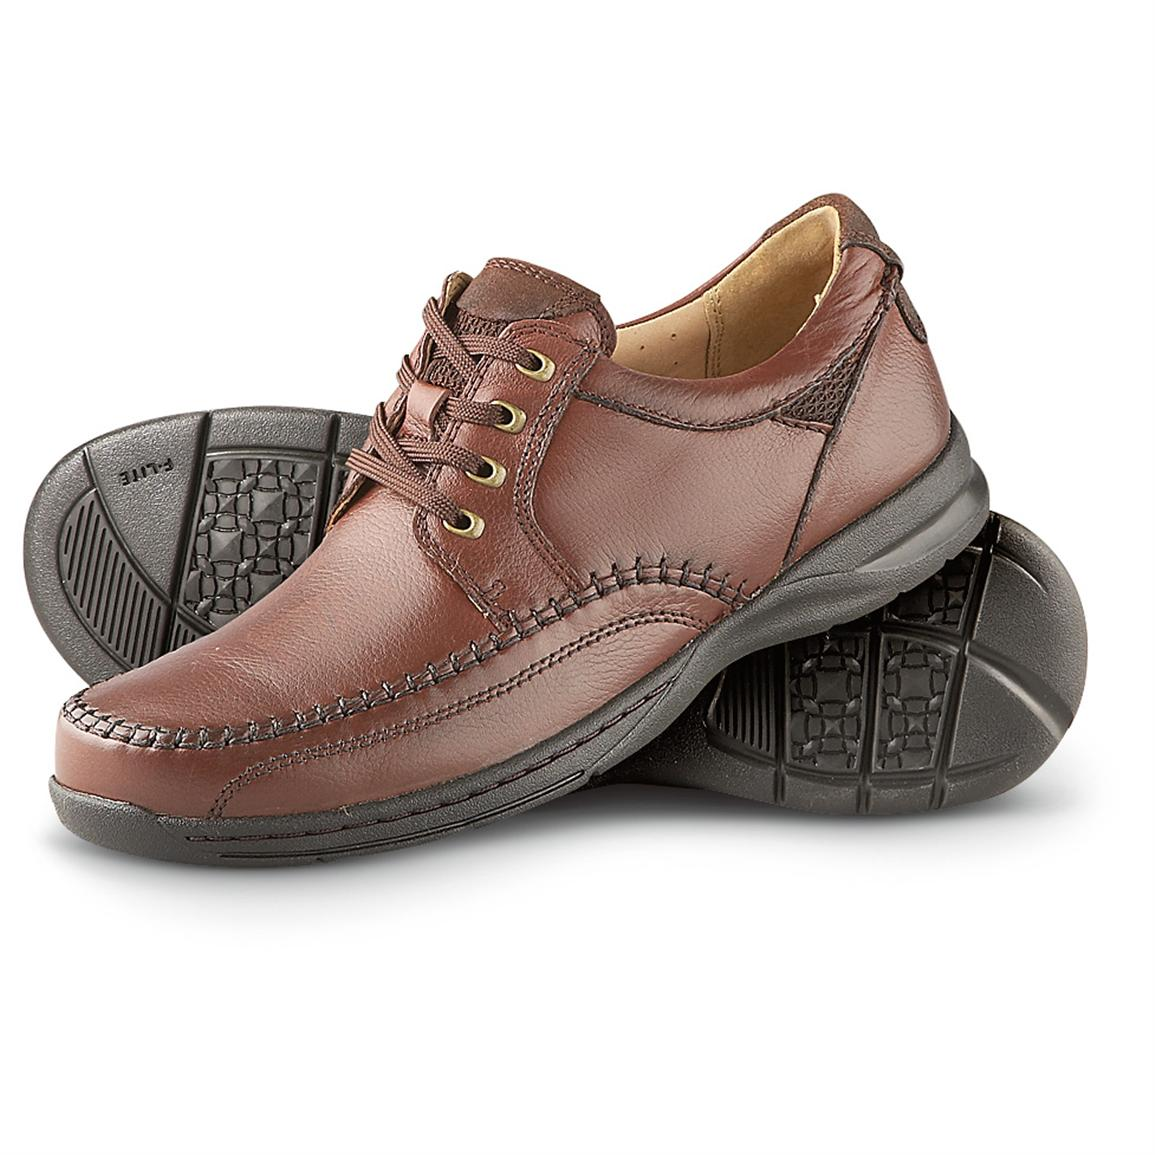 Men's Florsheim® Decatur Lace-up Casual Shoes, Brown